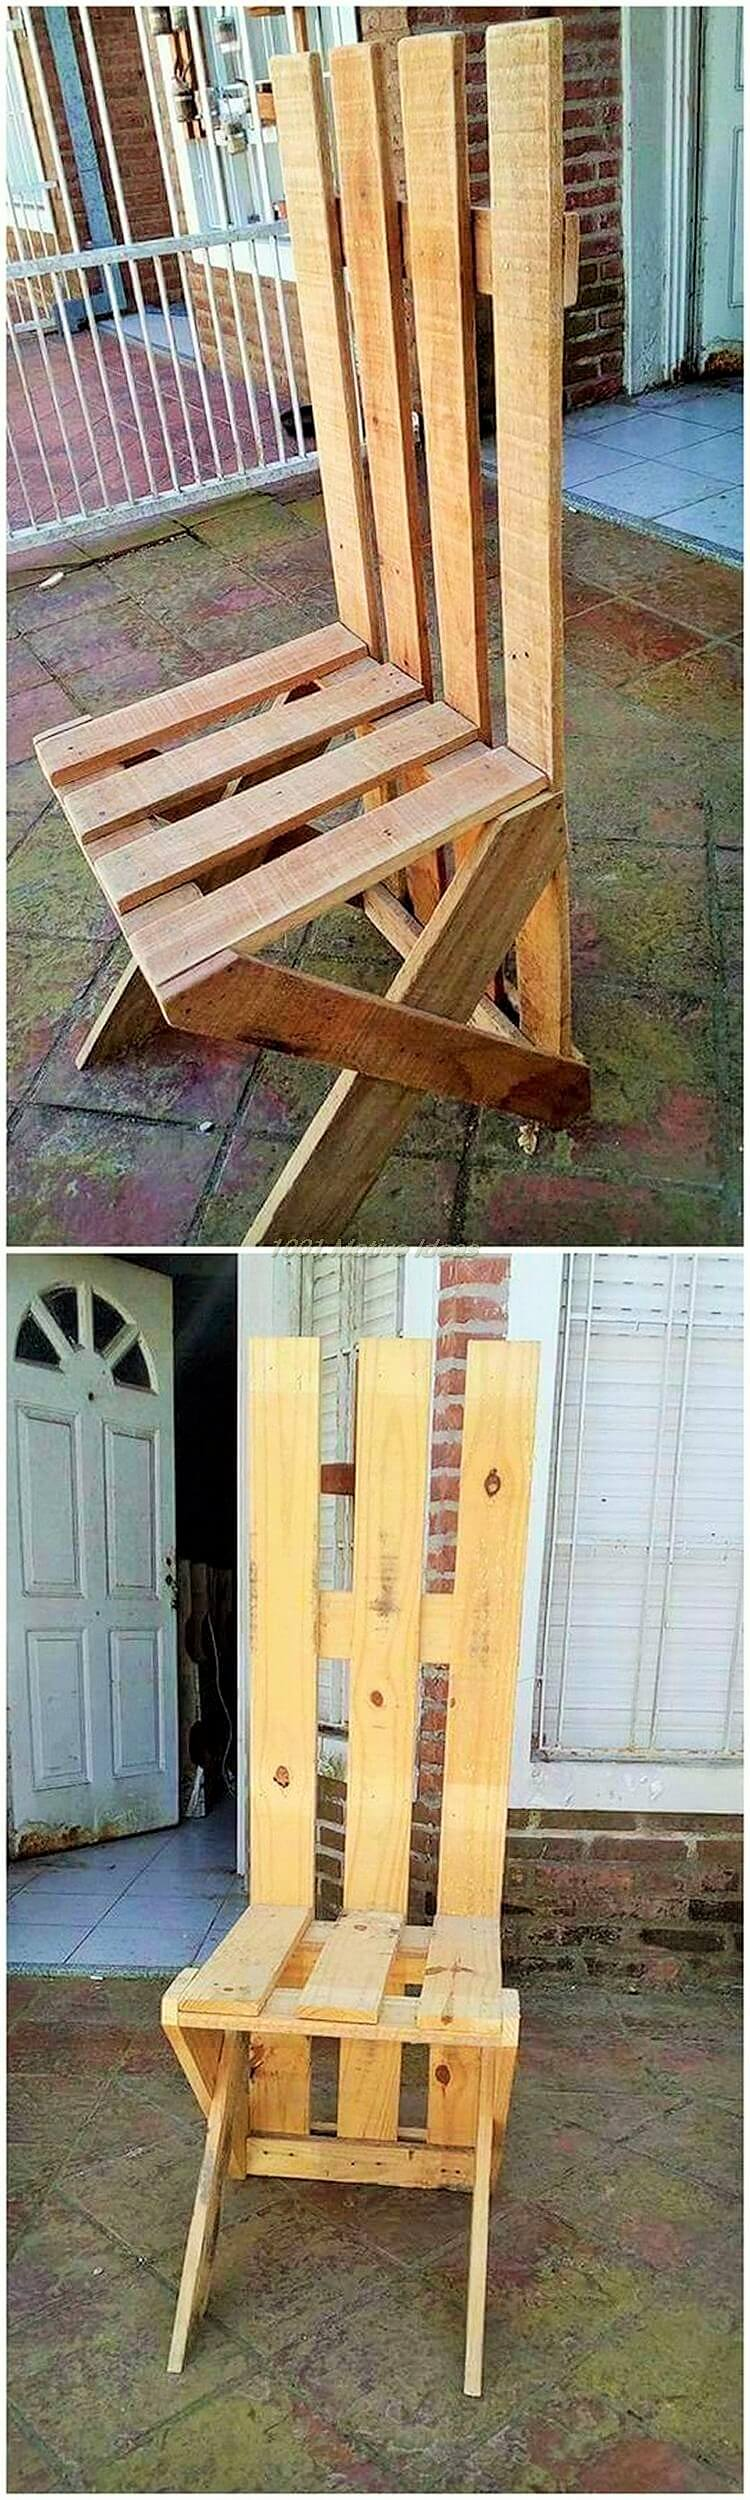 wooden-Pallet-furniture-Project-Ideas-001